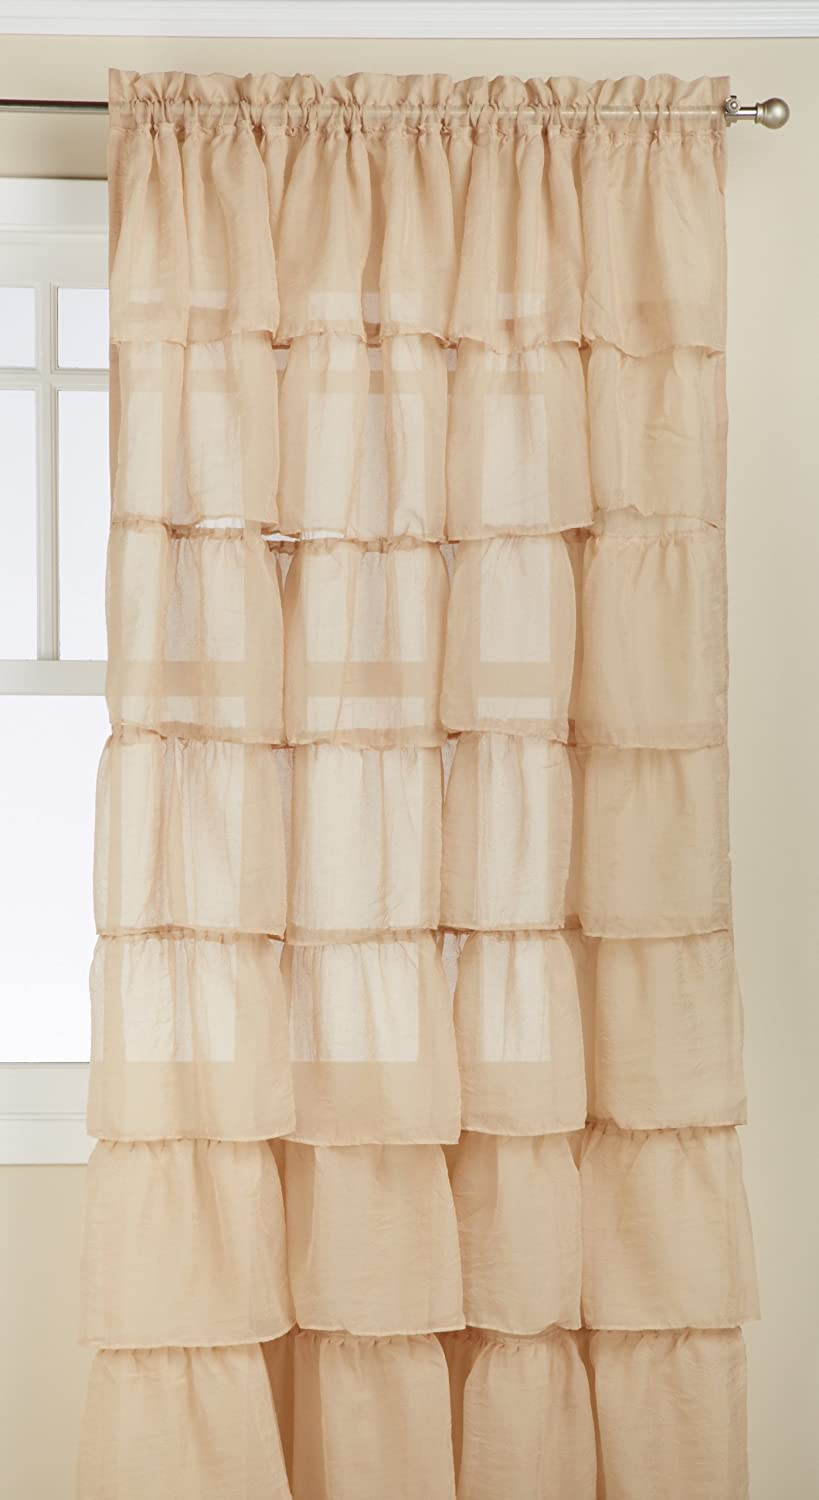 Amazon Lorraine Home Fashions Gypsy Shabby Chic Layered Ruffle Window Curtain Panel 60 By 84 Inch Sand Kitchen